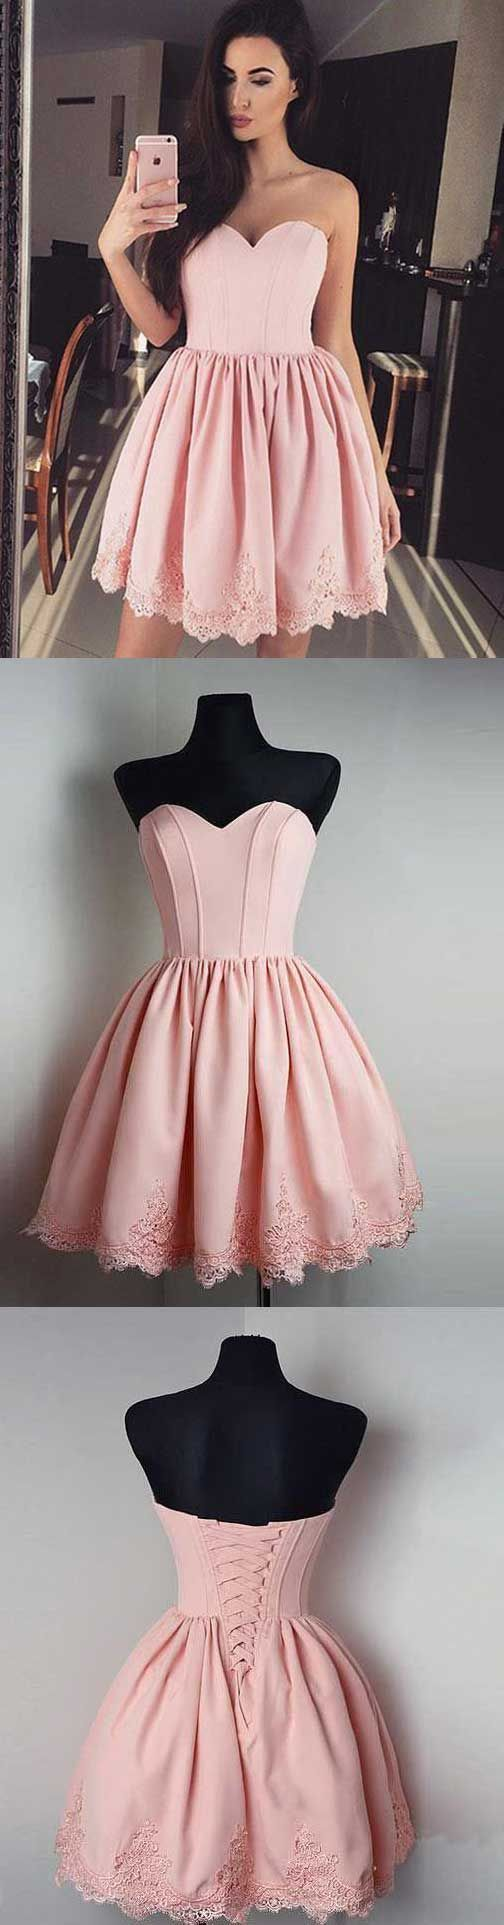 Aline sweetheart short satin pink homecoming dress with appliques